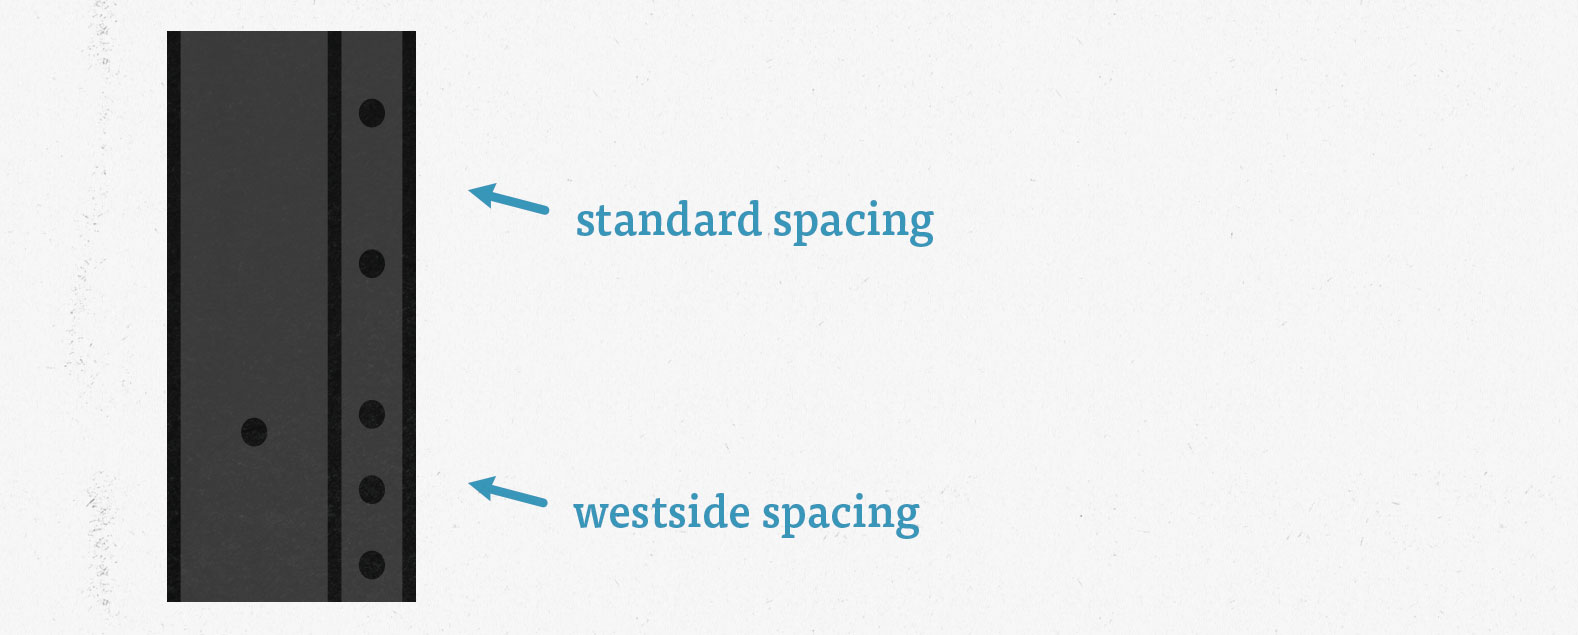 What's westside hole spacing and what's it for? Should you get a rack with westside hole spacing?